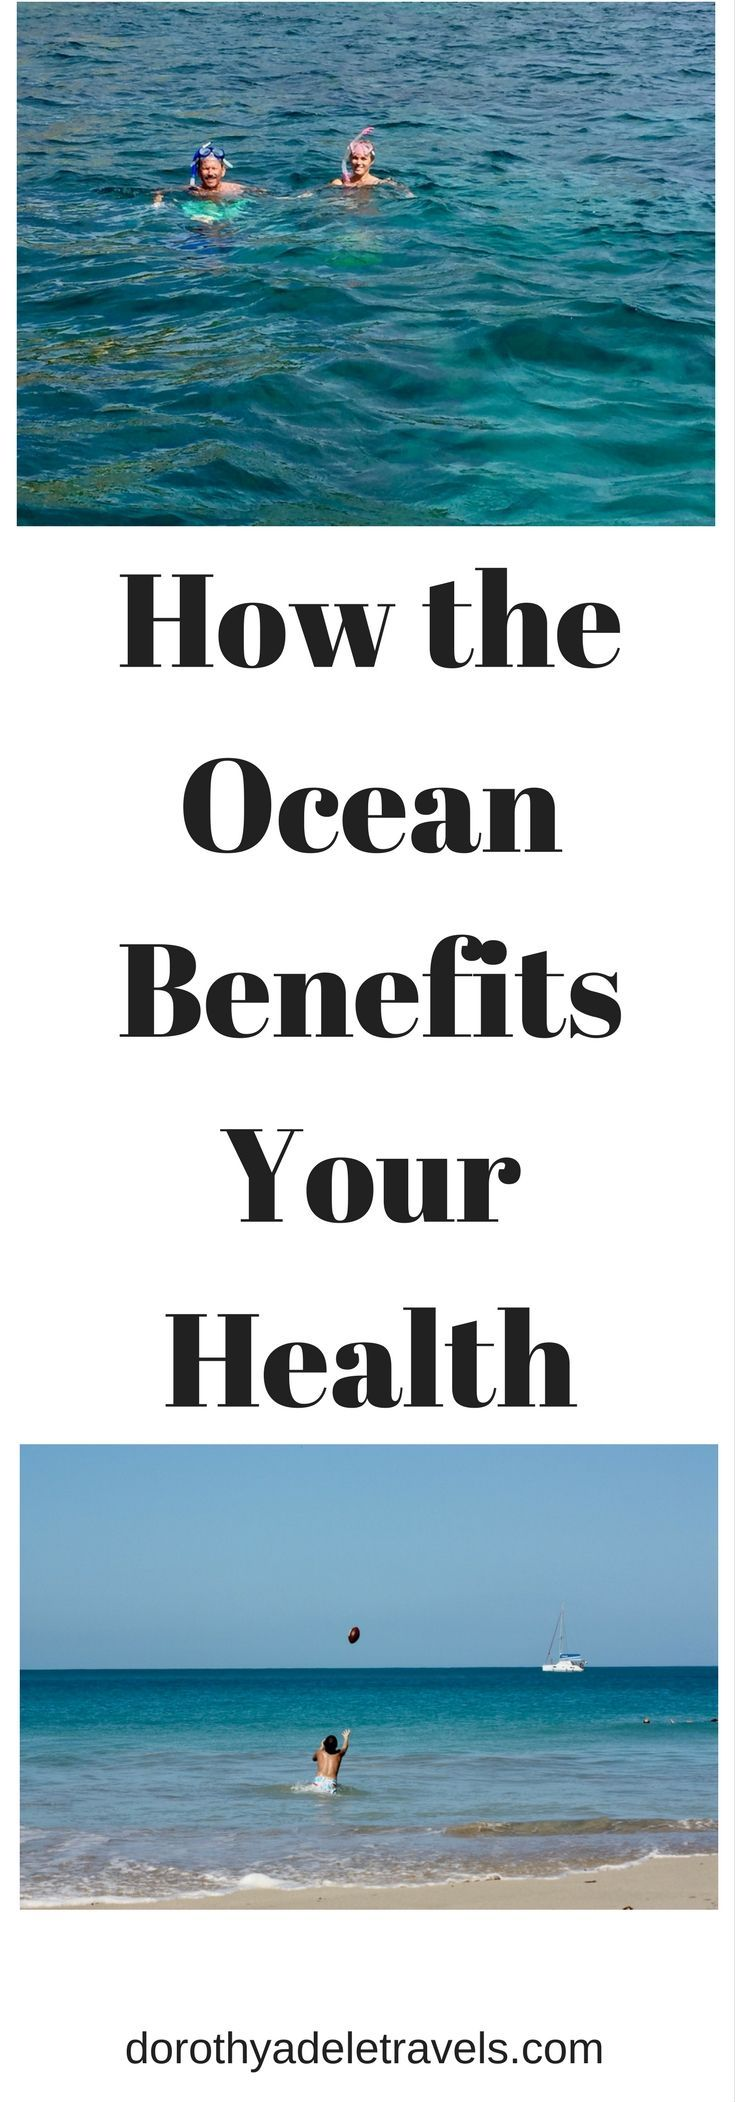 Ocean, Sea, Caribbean, Atlantic, Pacific, Health, Health Benefits, Activity, breathing sea air improves lung function, and seawater boosts mood and detoxifies, magnesium moisturizes and heals, vitamin D from the sun, shades of blue improve our mood